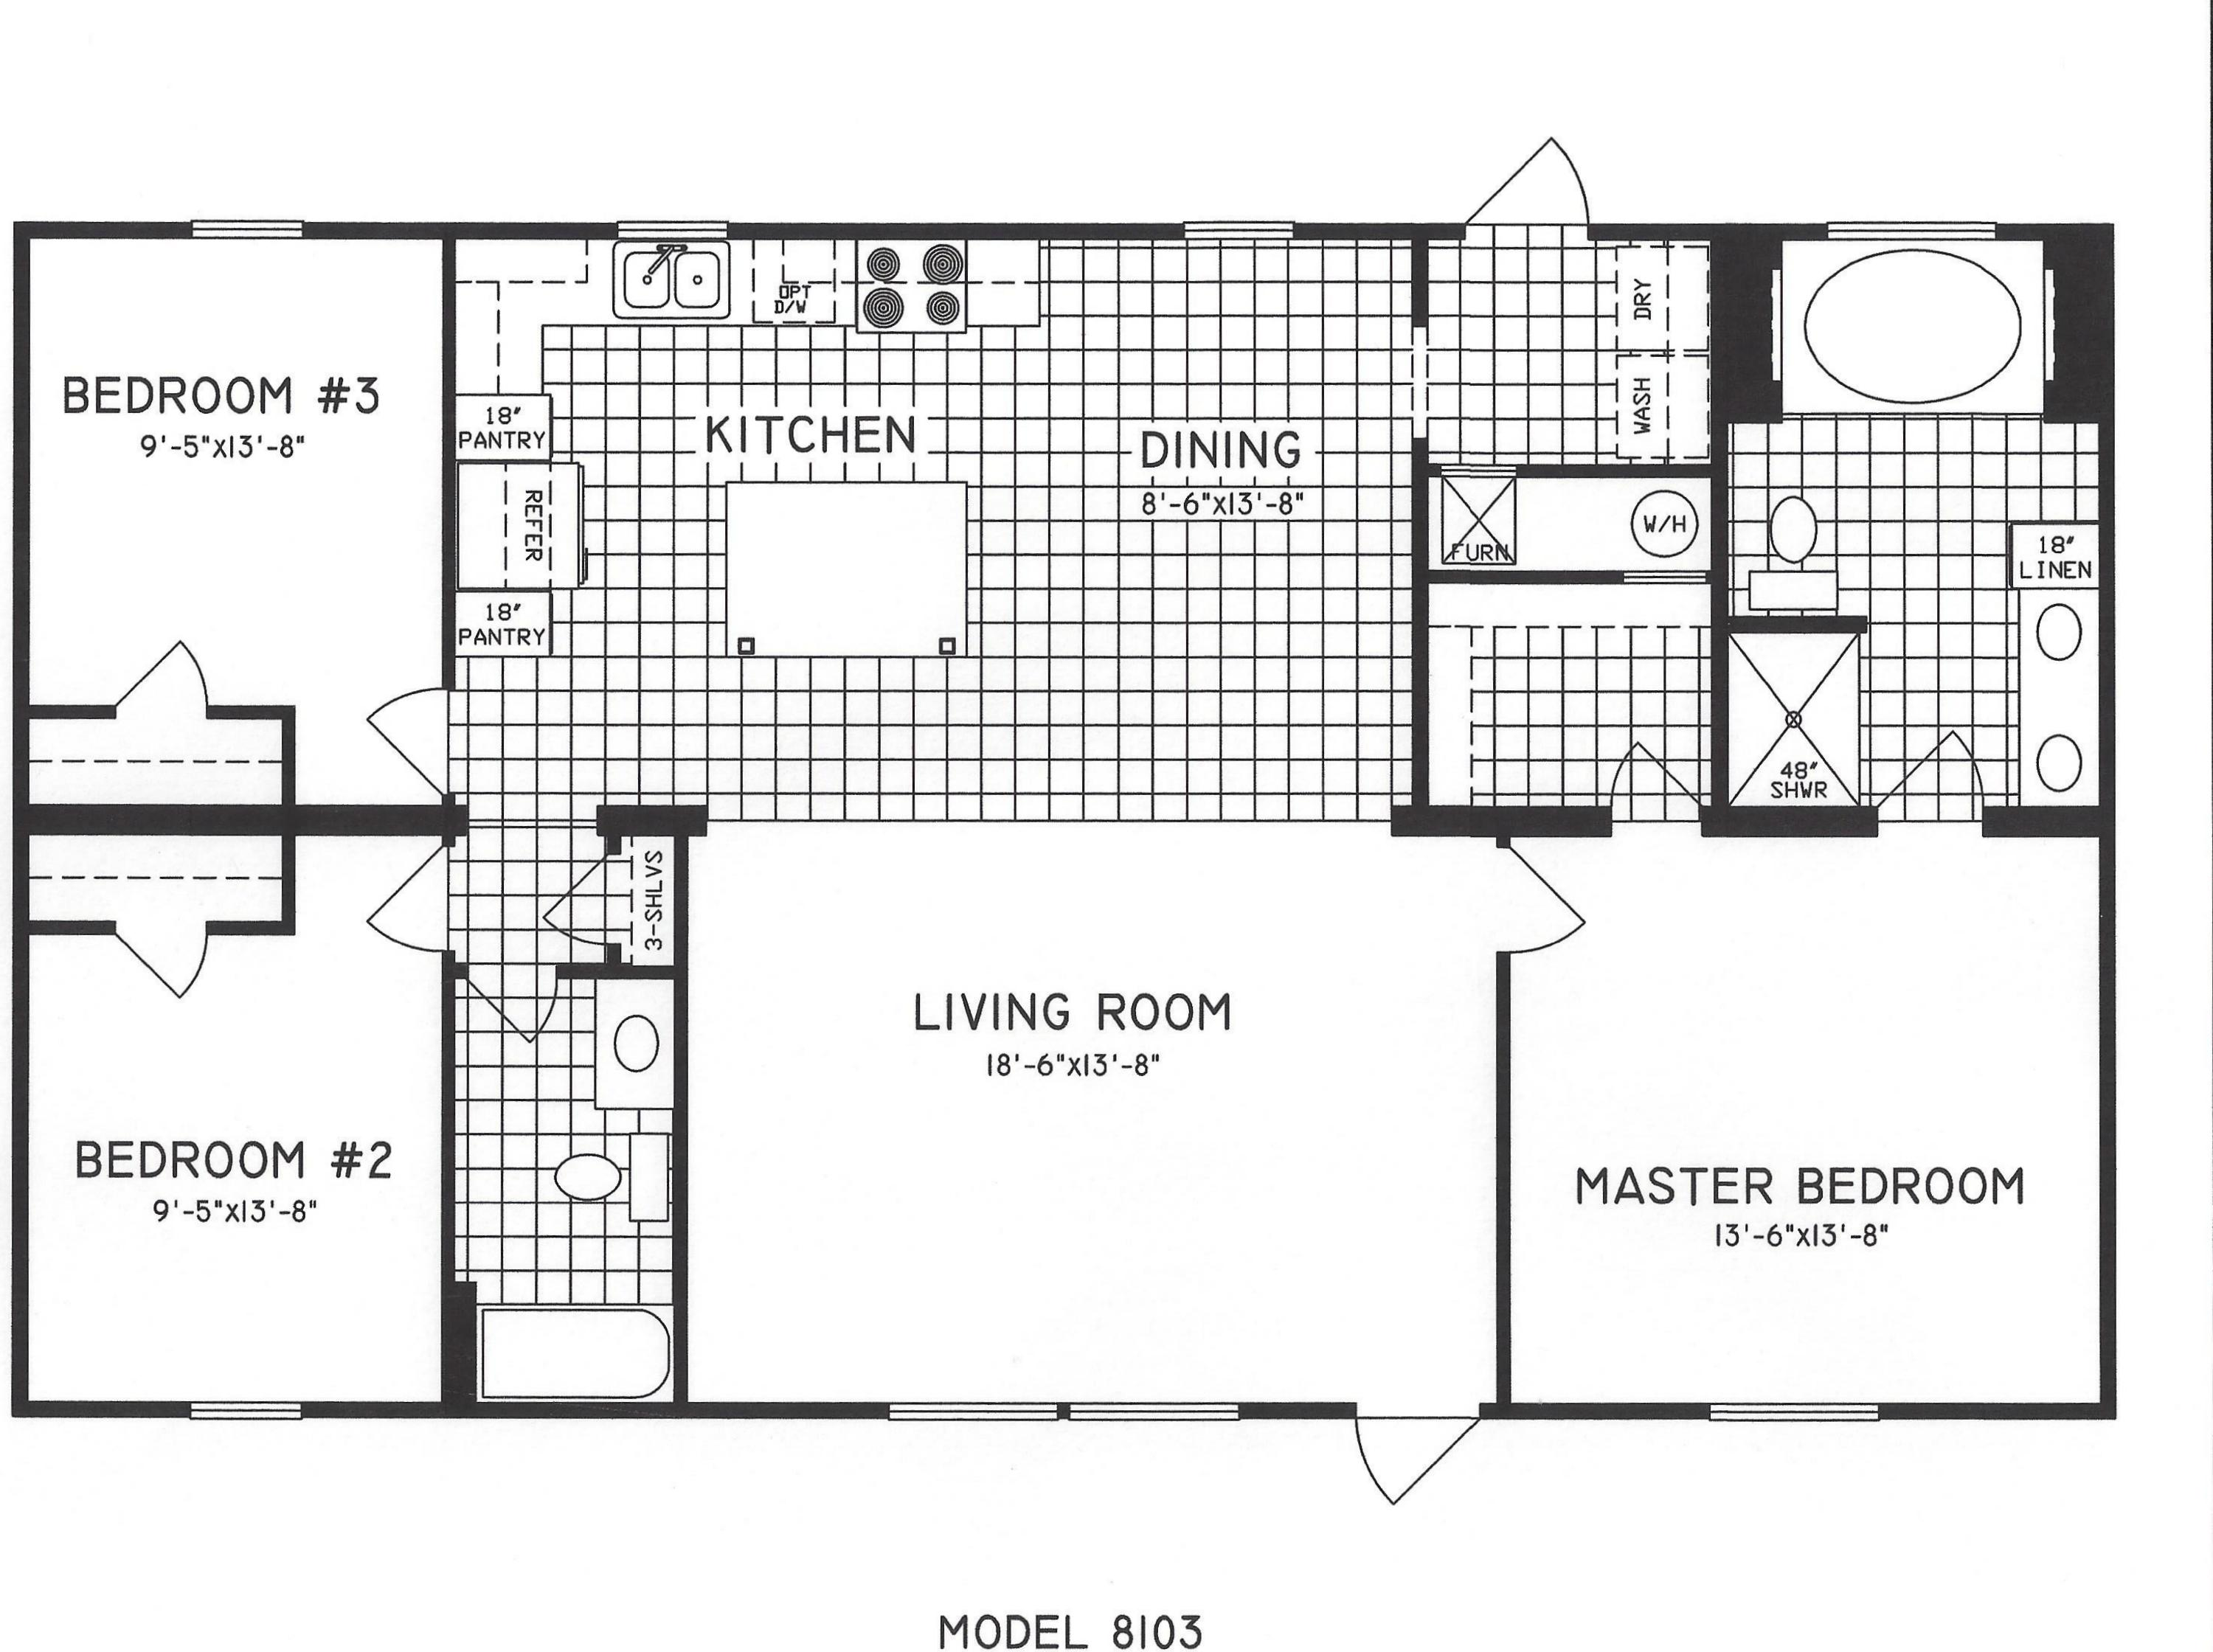 3 bedroom floor plan c 8103 hawks homes manufactured for 2 bedroom 3 bath house plans